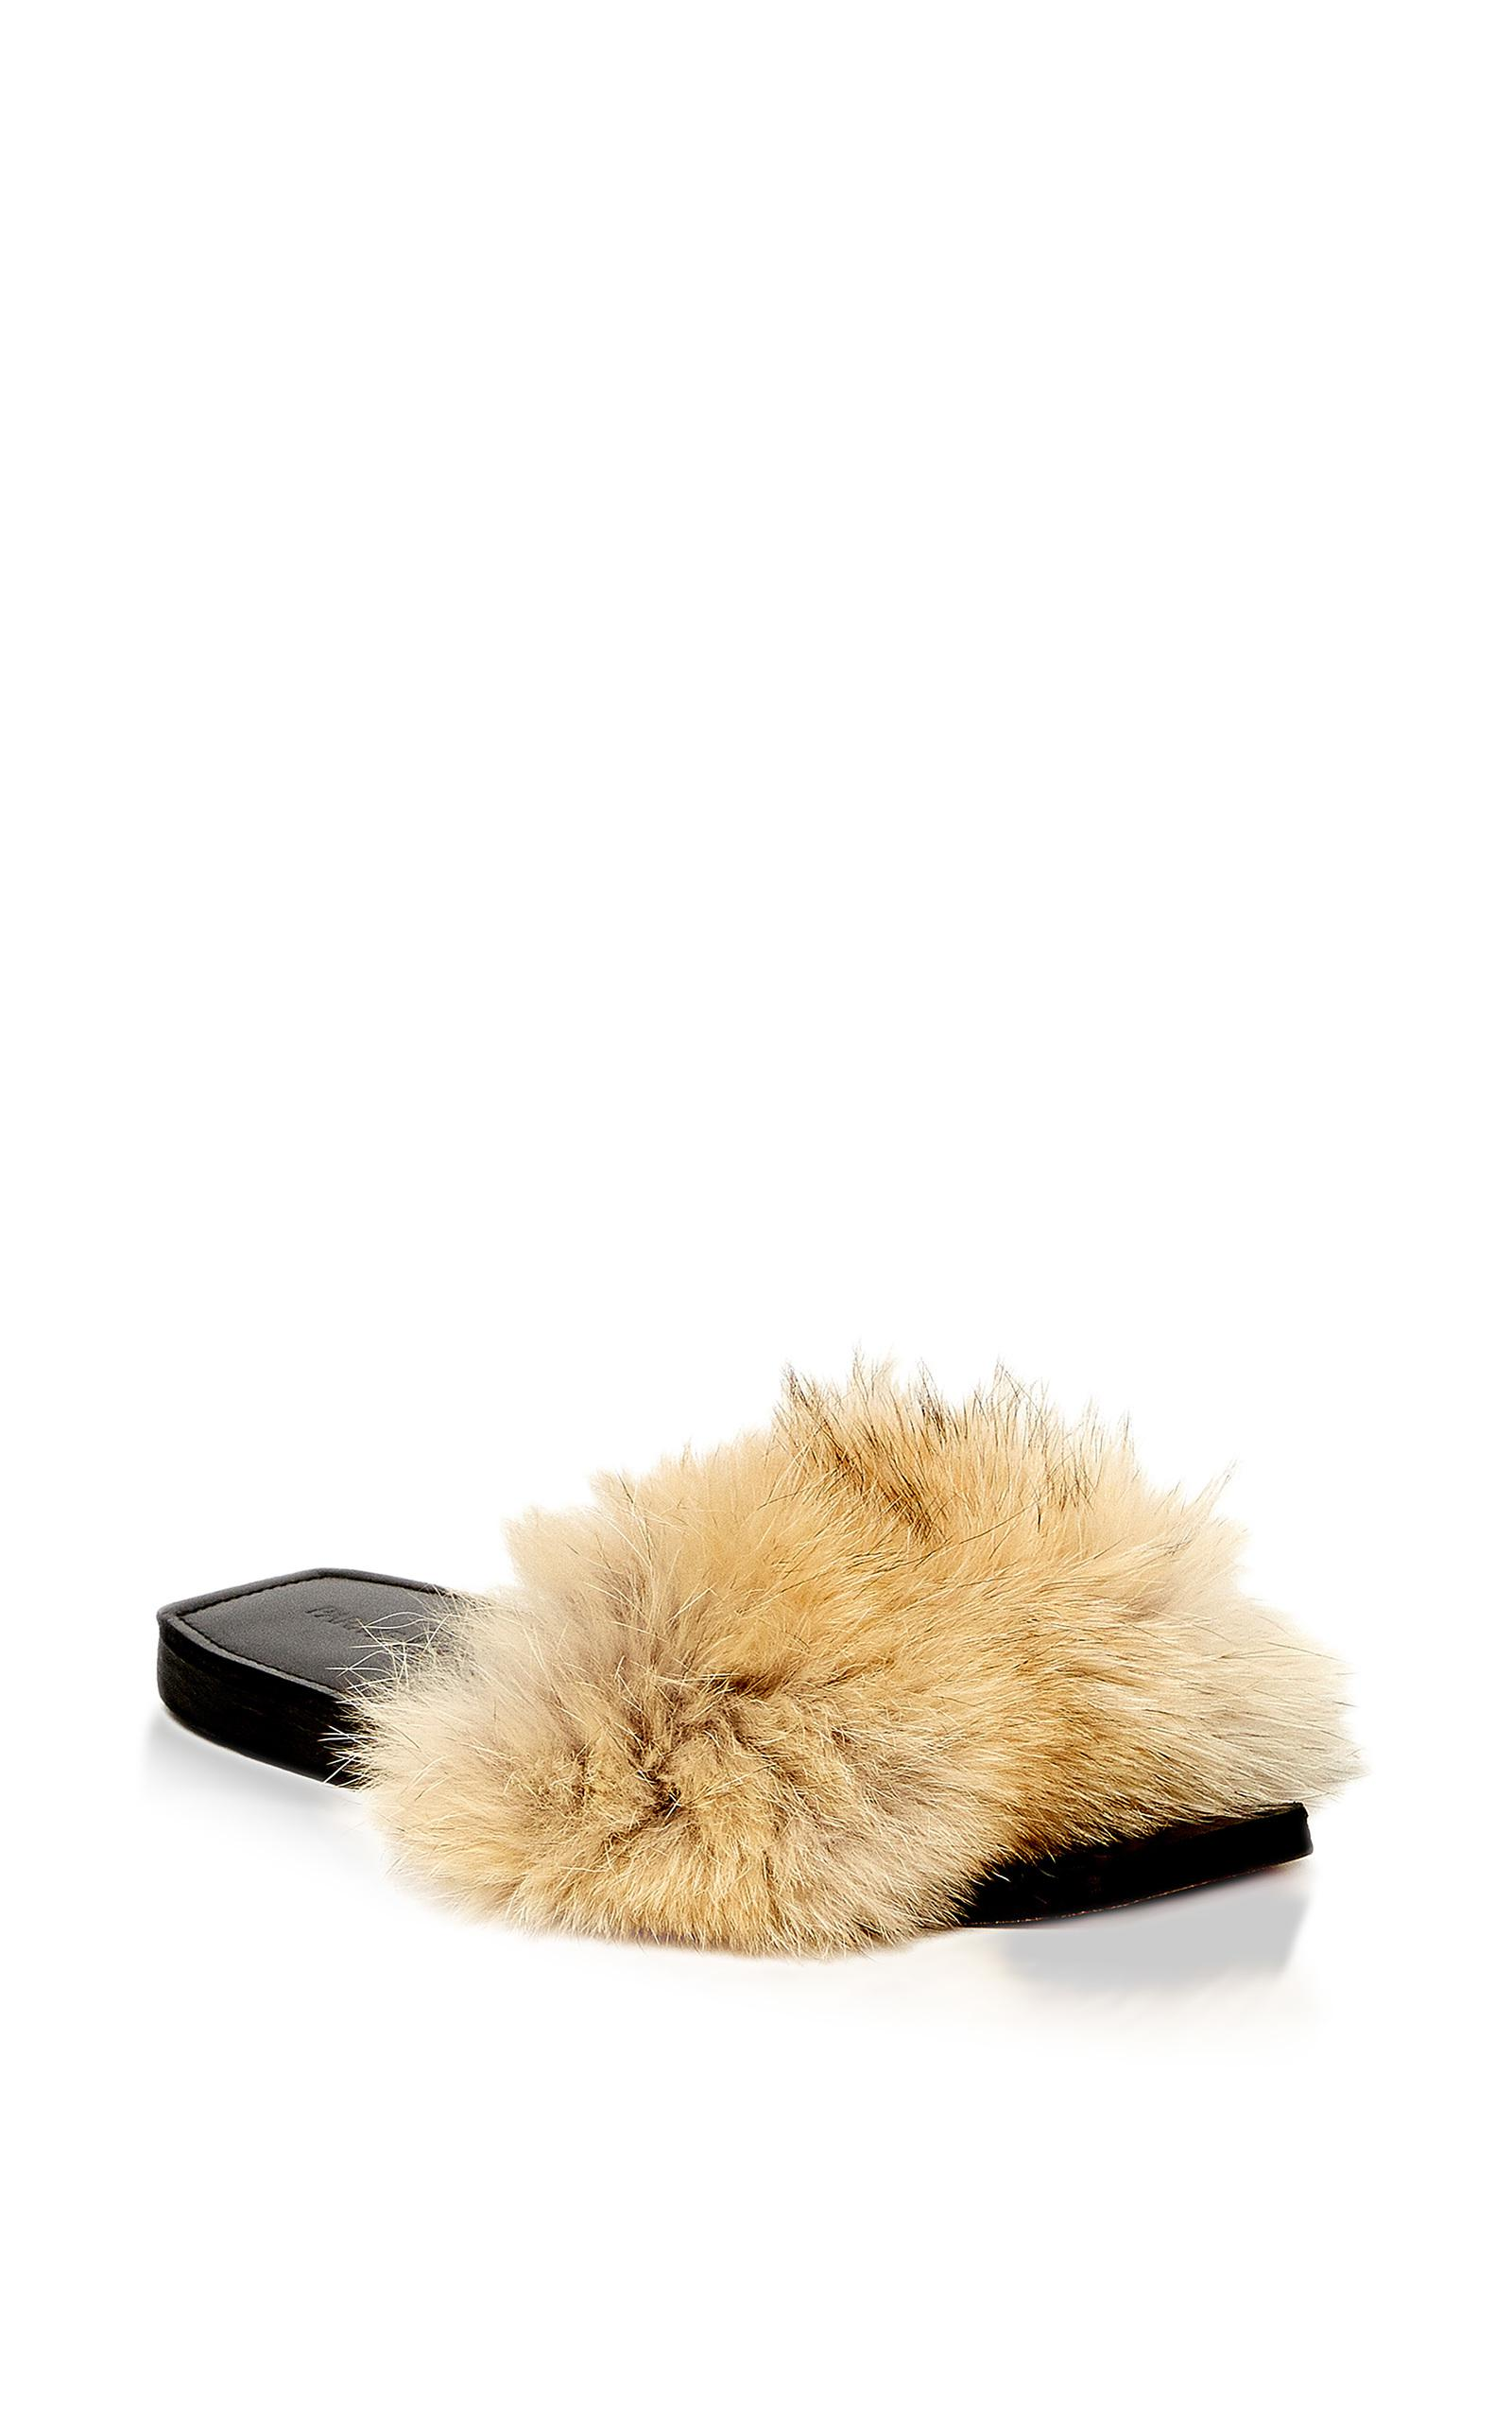 68123913f8875 Lyst - Parme Marin Furry Baby Sandals